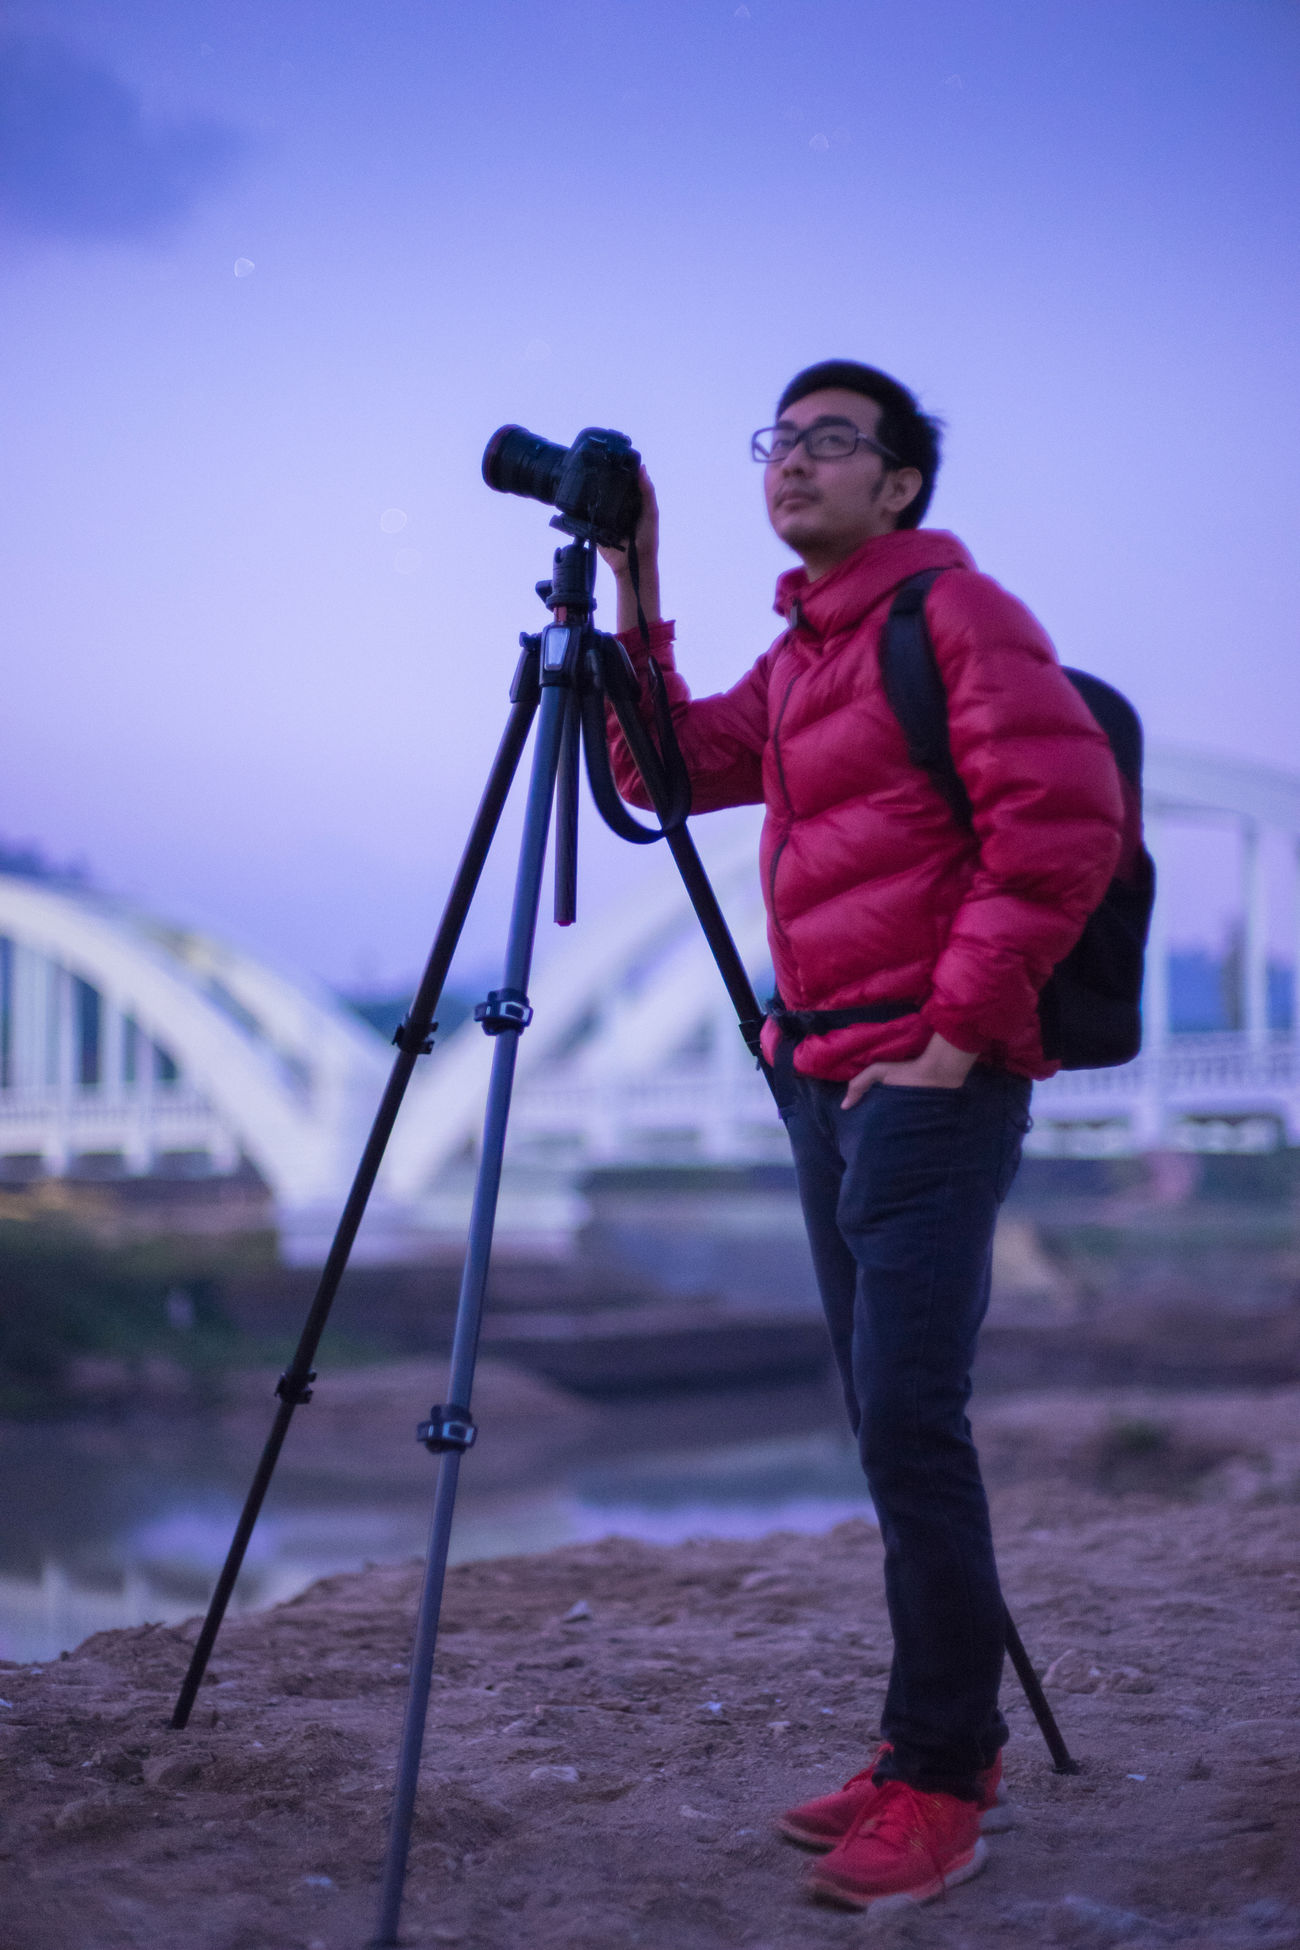 Me Adult Adults Only Asian  Camera - Photographic Equipment Cold Day Filming Full Length Leisure Activity Man Men Nature Nightphotography One Person Outdoors People Photographer Red Sky Smiling Standing Thailand_allshots Tripod Young Adult